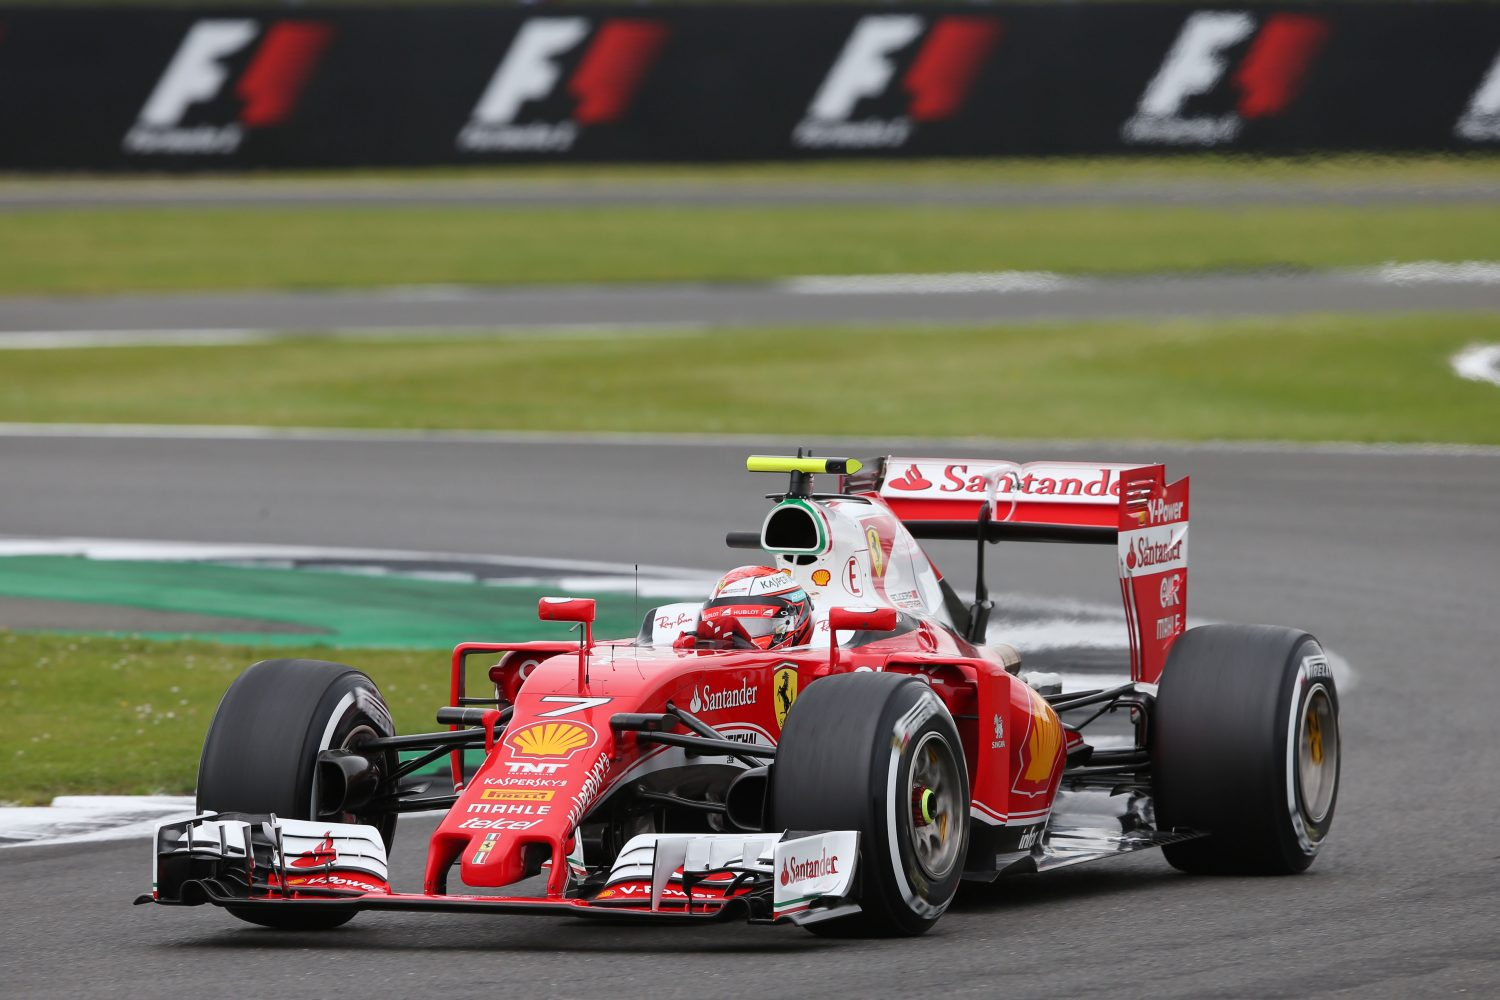 formula 1 When is f1 on: f1countdowncom simply tells you when the next f1 race of the 2018 season will be taking place.